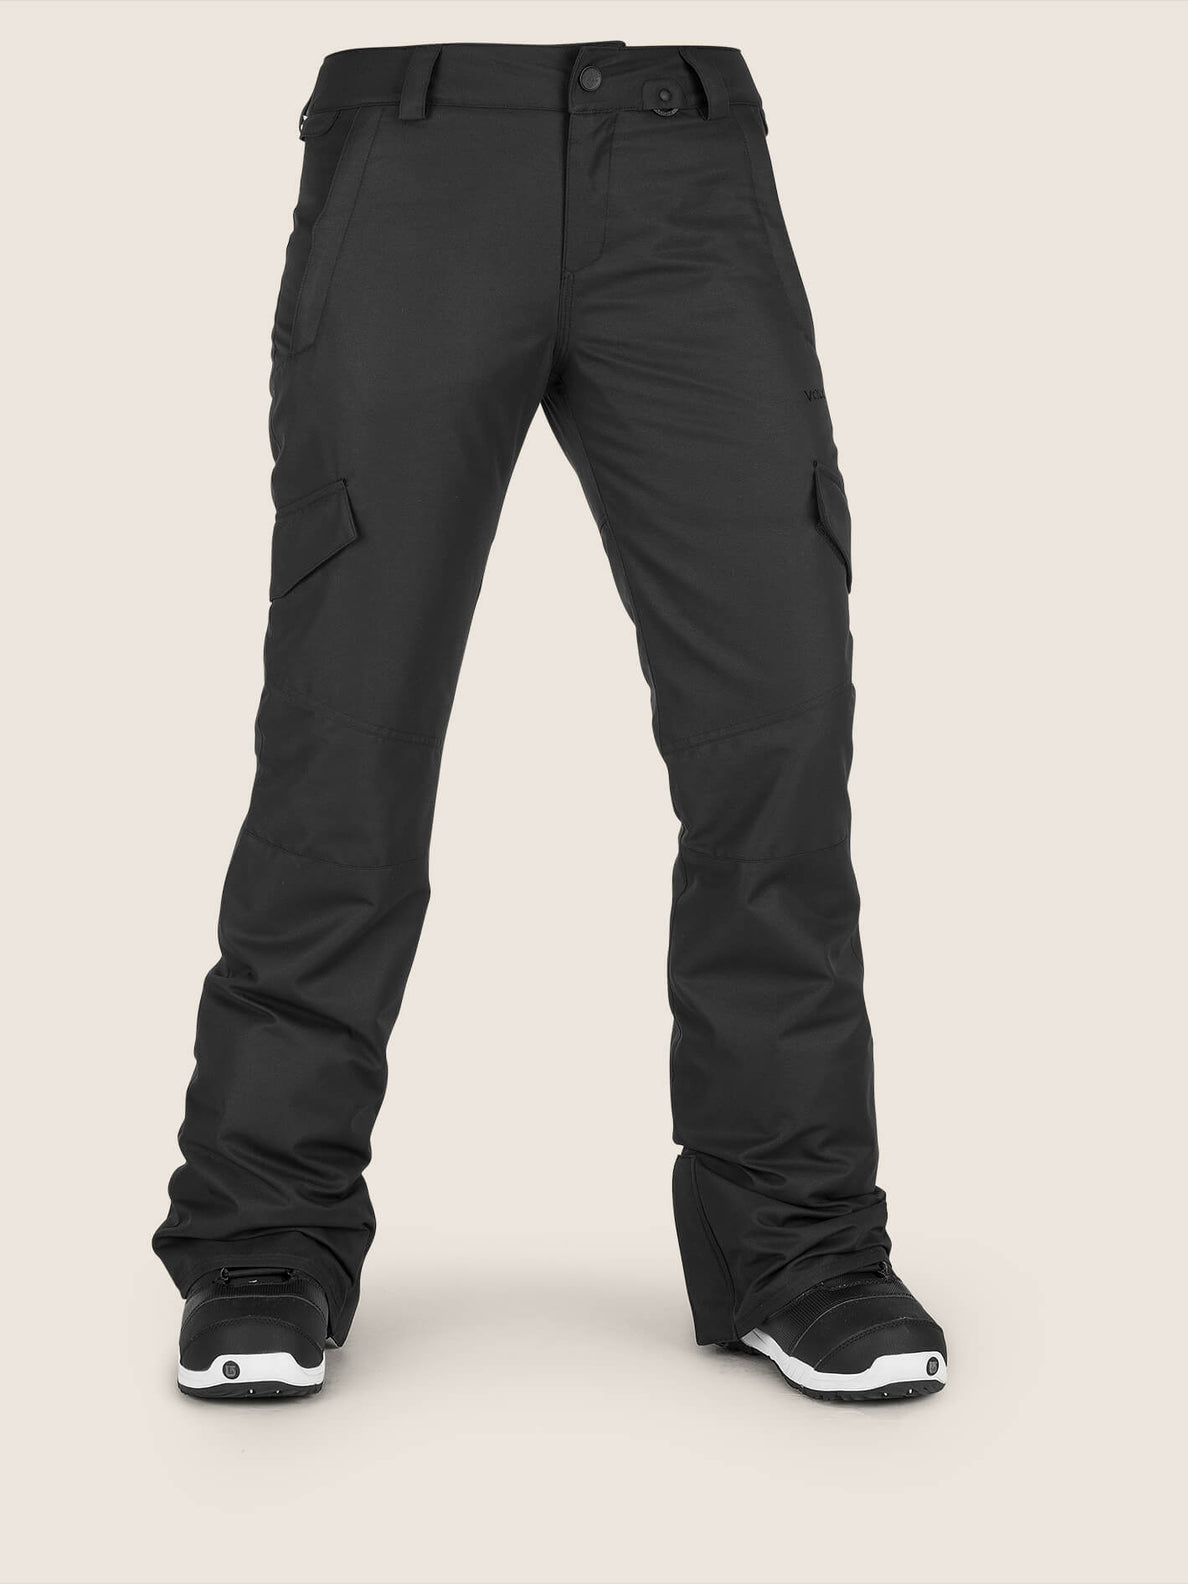 Bridger Insulated Pant In Black, Front View